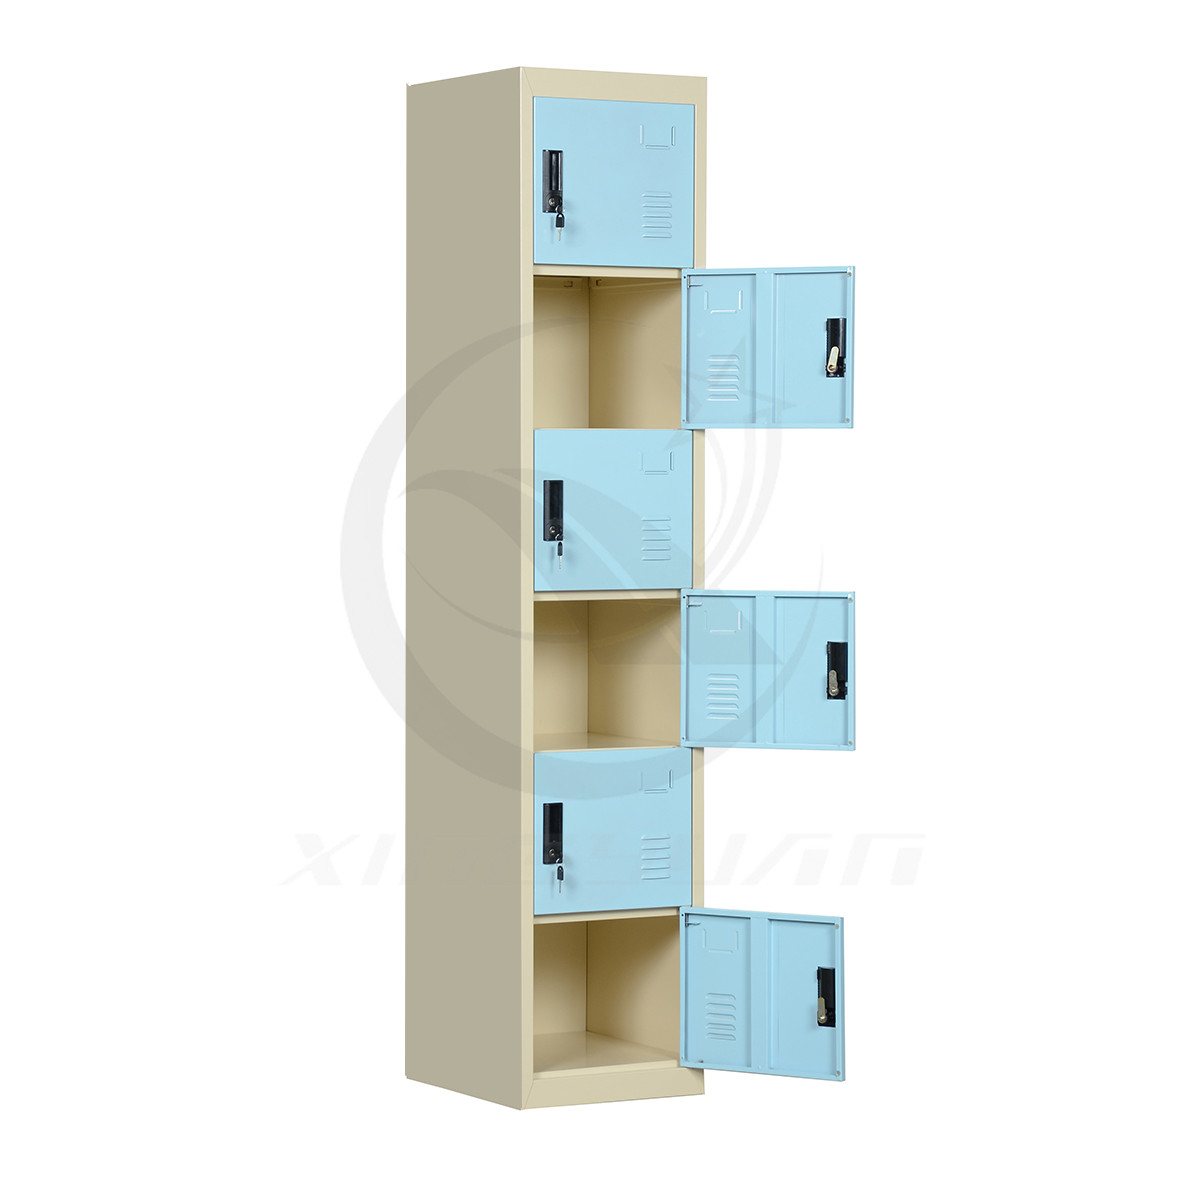 Xingyuan Practical Lockable 6 Door Closet Cabinet Steel Locker